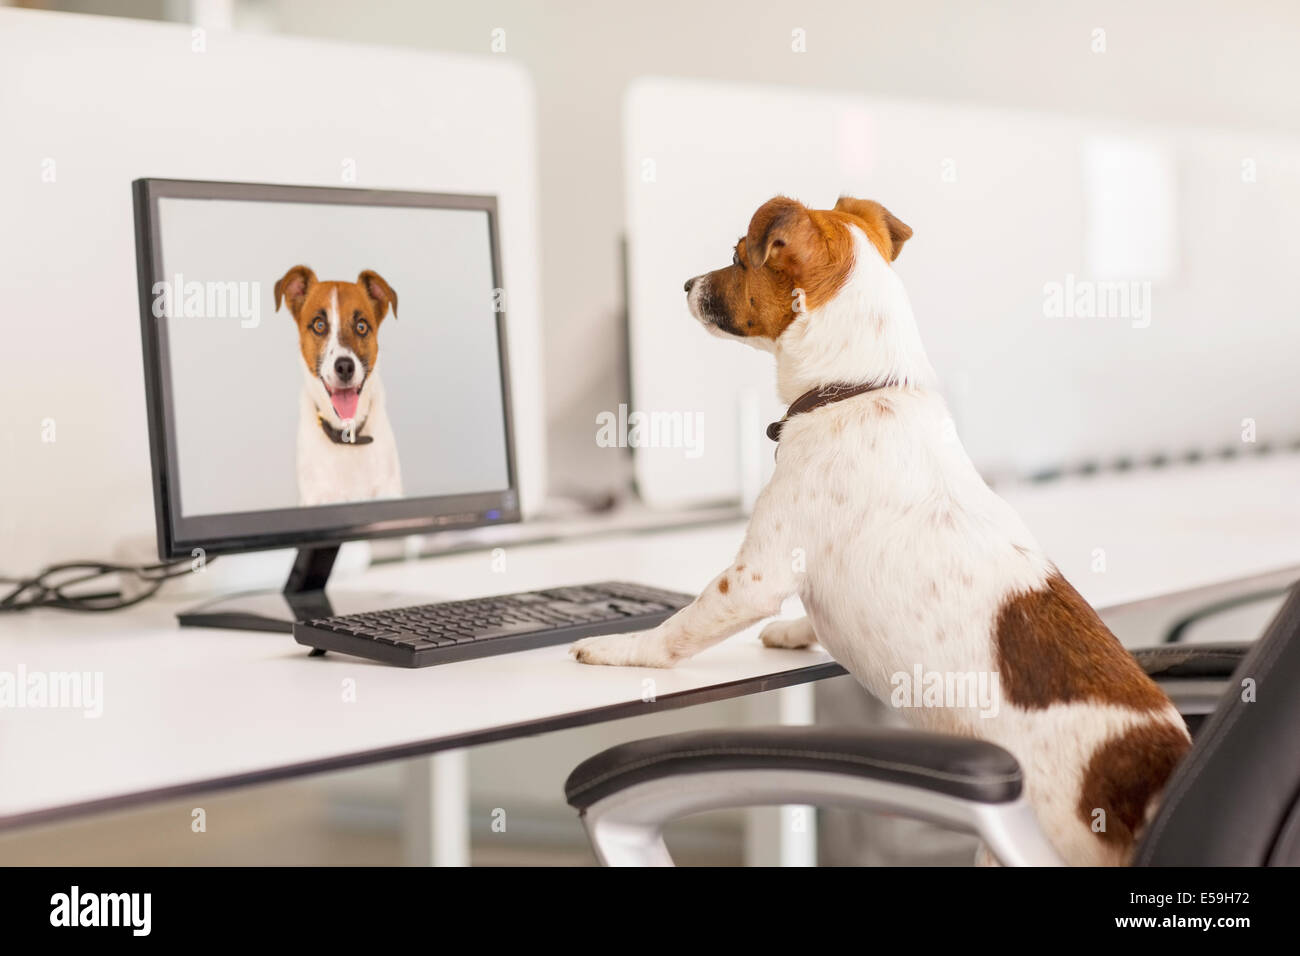 Dog standing at desk in office - Stock Image